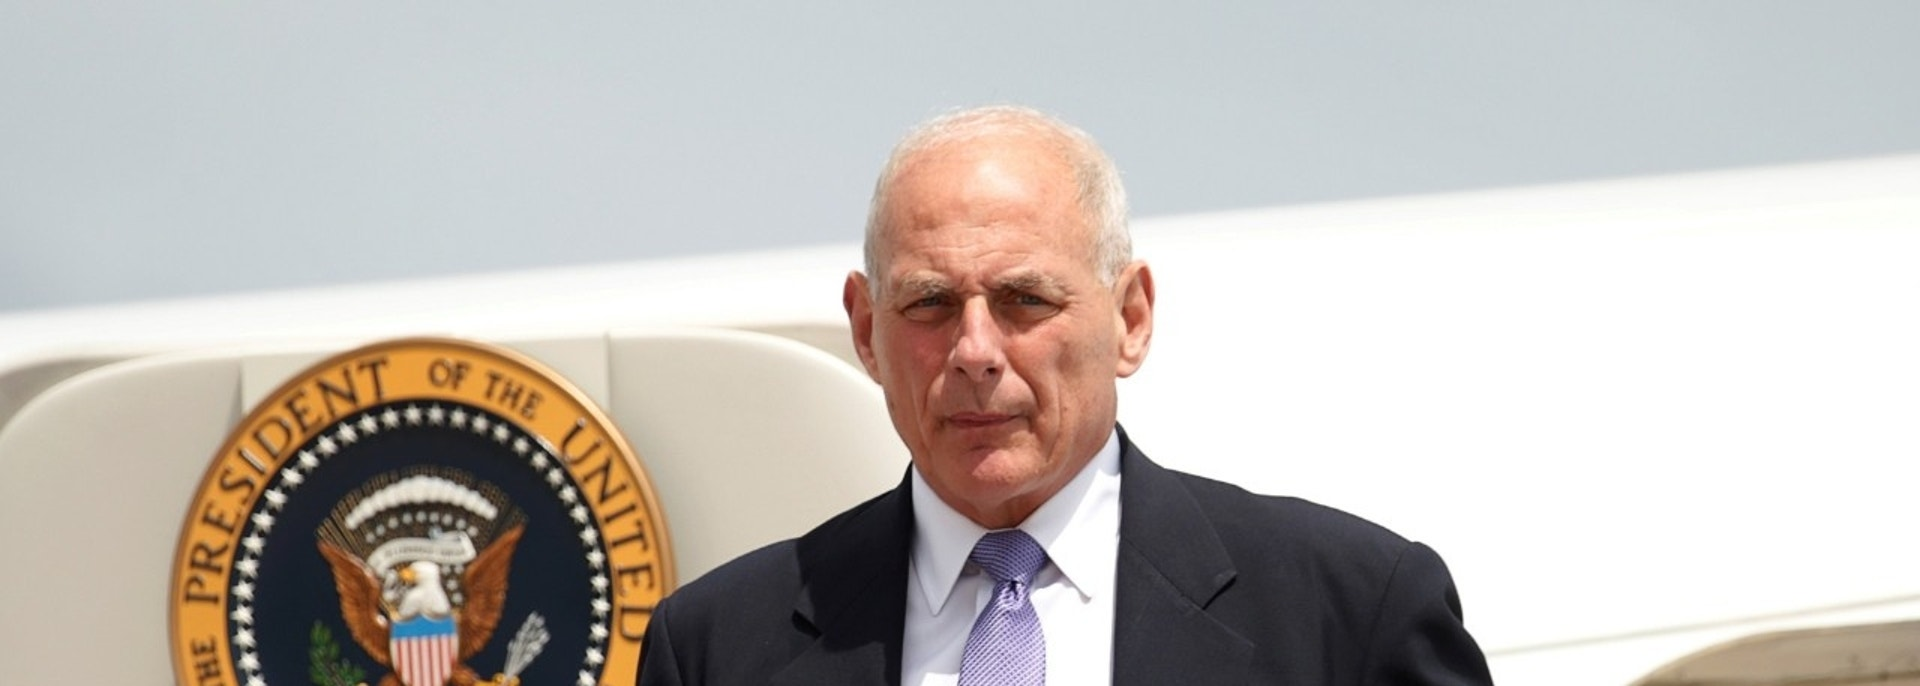 White House Chief of Staff John Kelly steps from Air Force One, to accompany U.S. President Donald Trump to nearby Camp David for a meeting with the National Security Council, in Hagerstown, Maryland, U.S., August 18, 2017. REUTERS/Kevin Lamarque - RC1FBFCF94D0